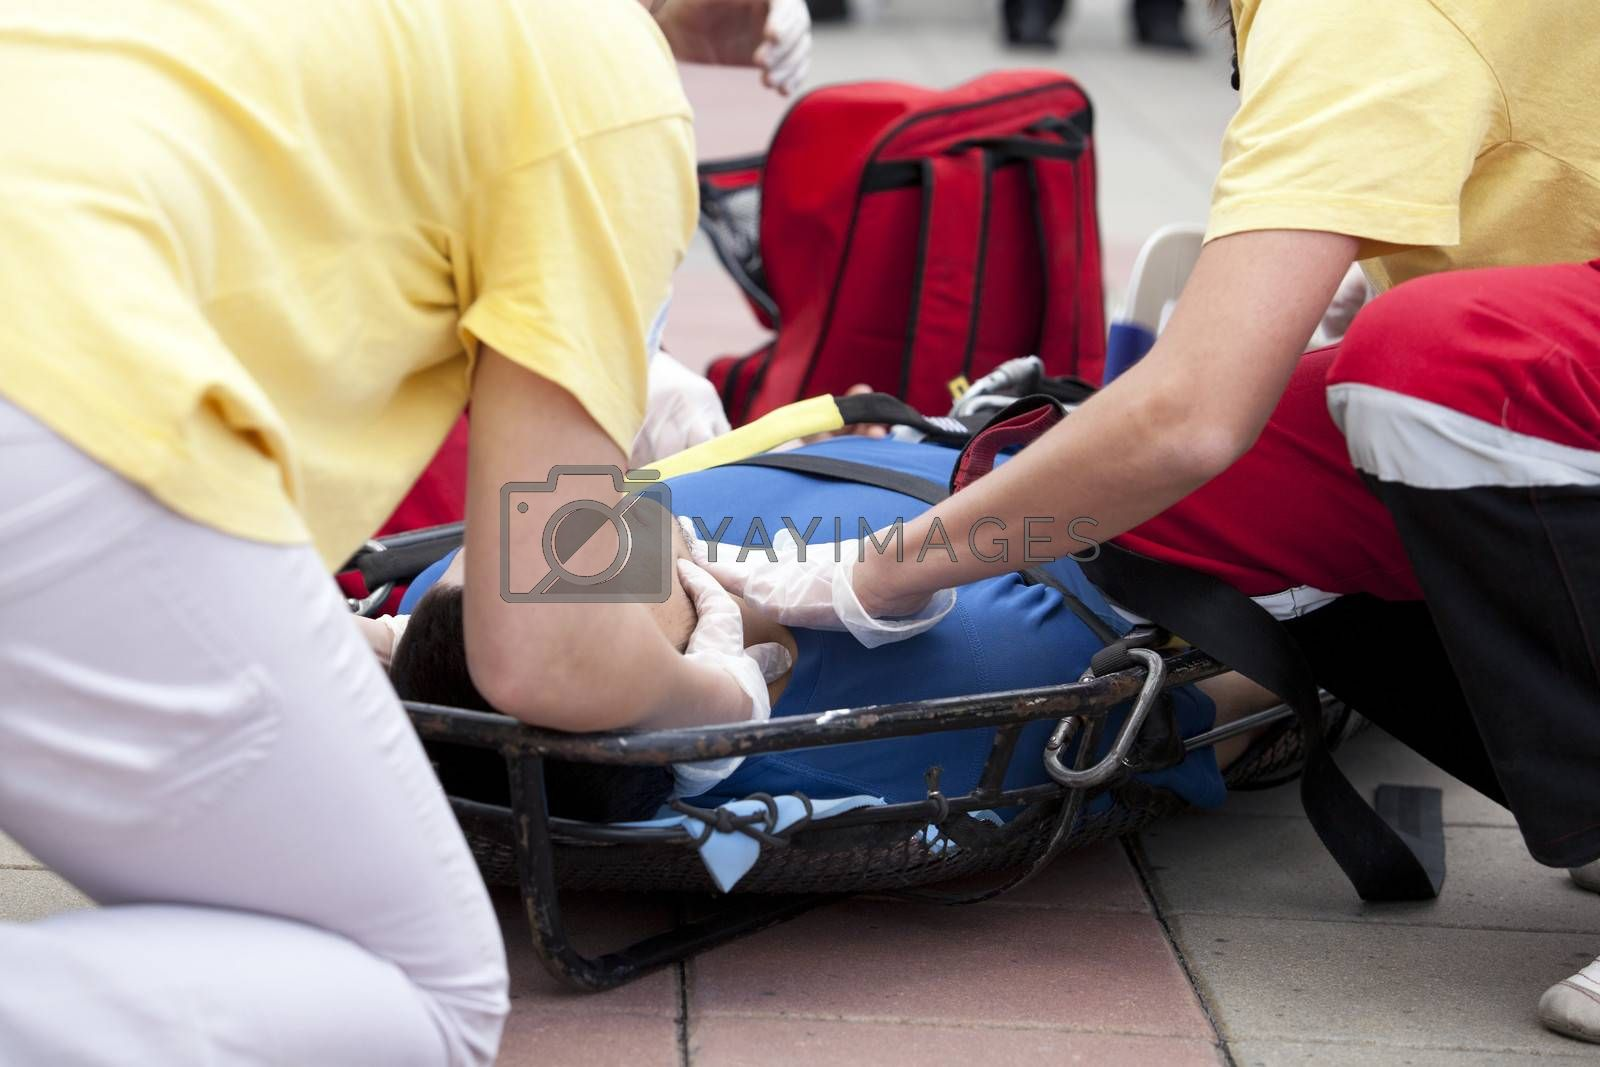 Royalty free image of First aid training by wellphoto